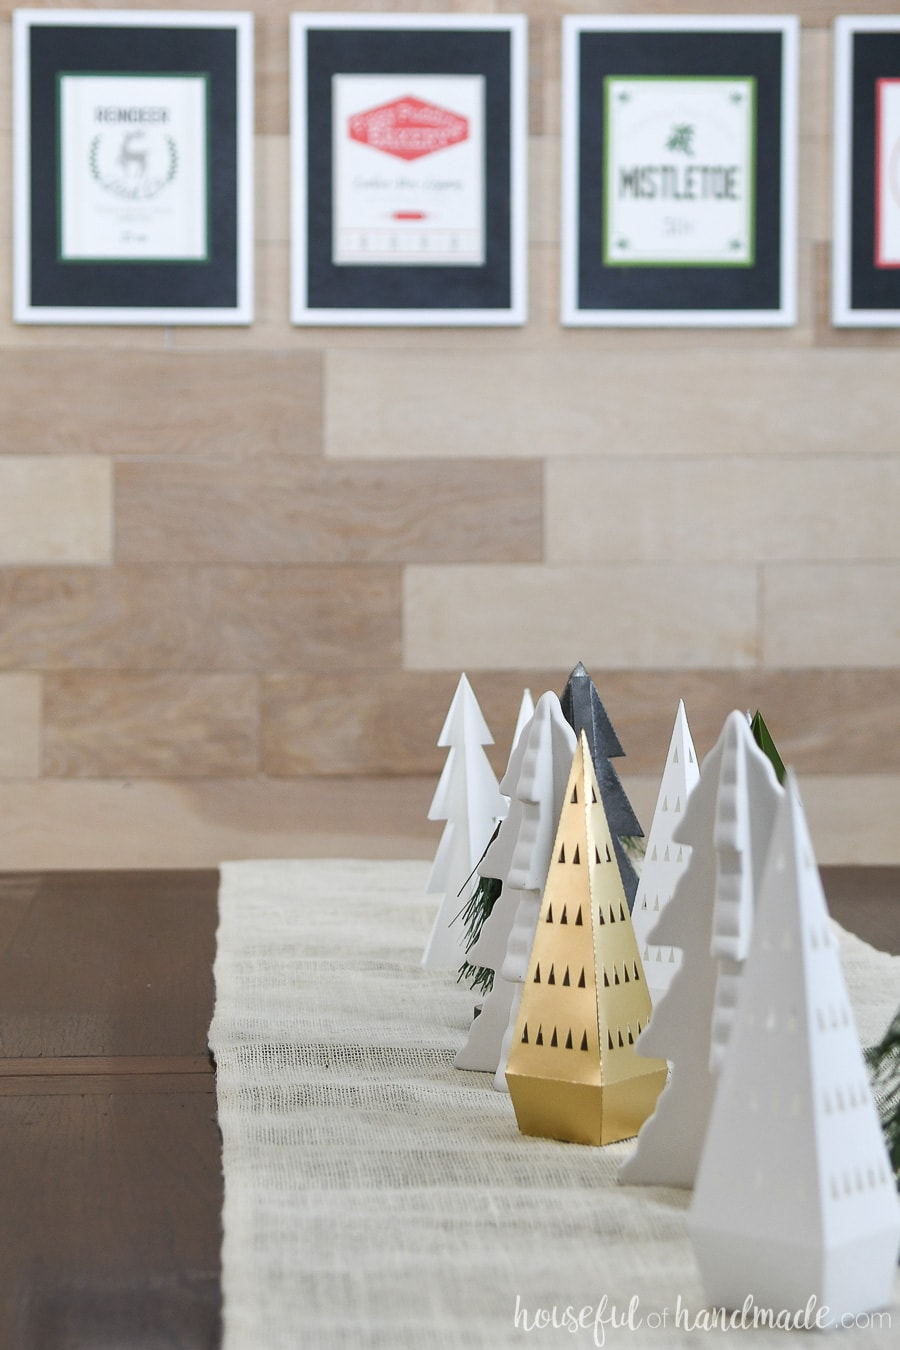 Dining room table filled with a variety of paper Christmas trees and framed printable Christmas signs in the background.